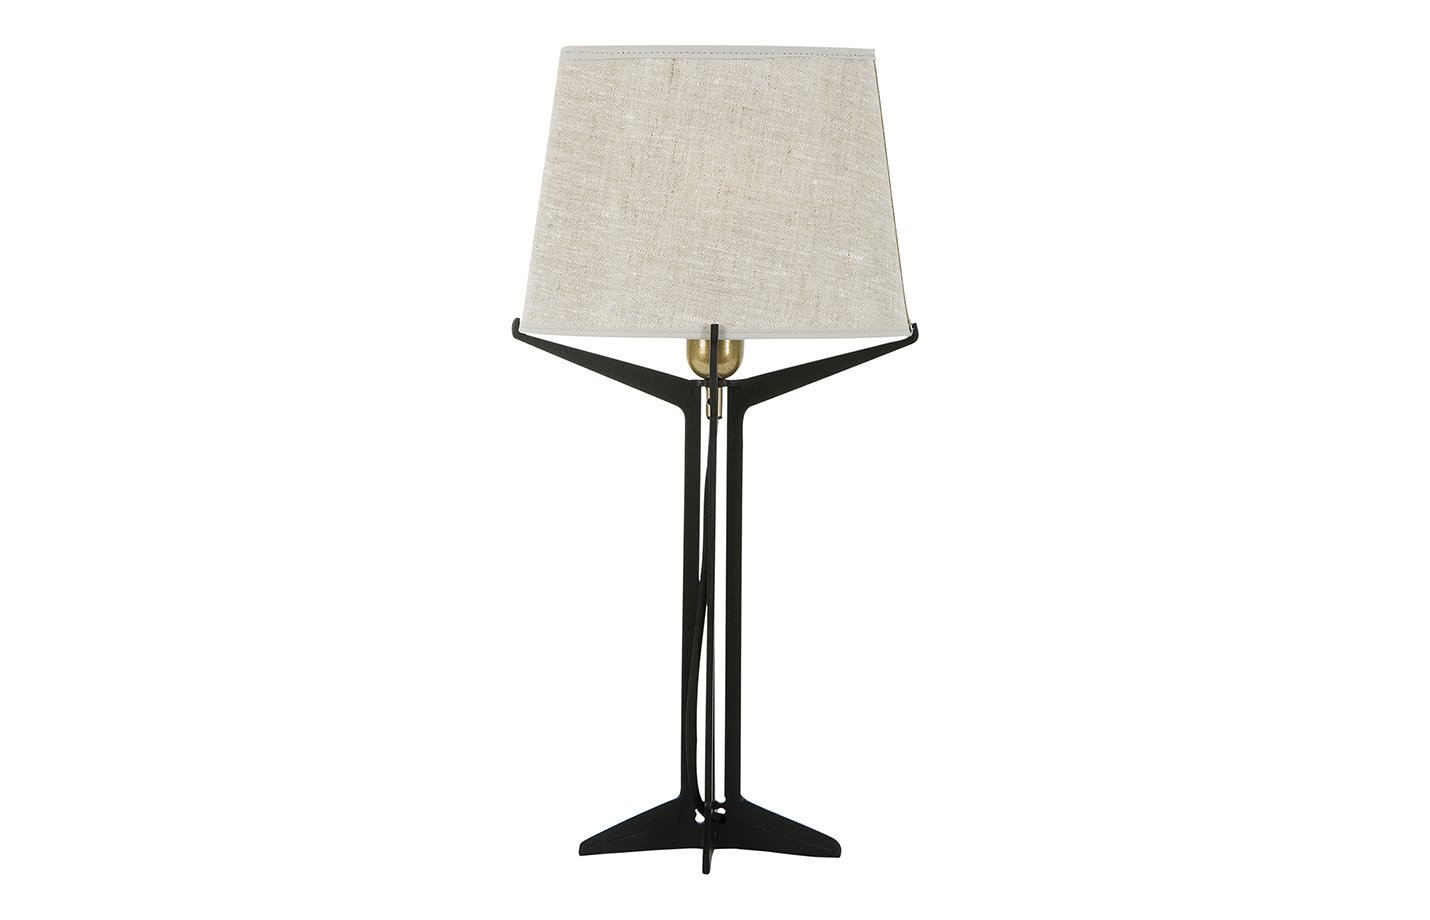 Monument table lamp – Beige